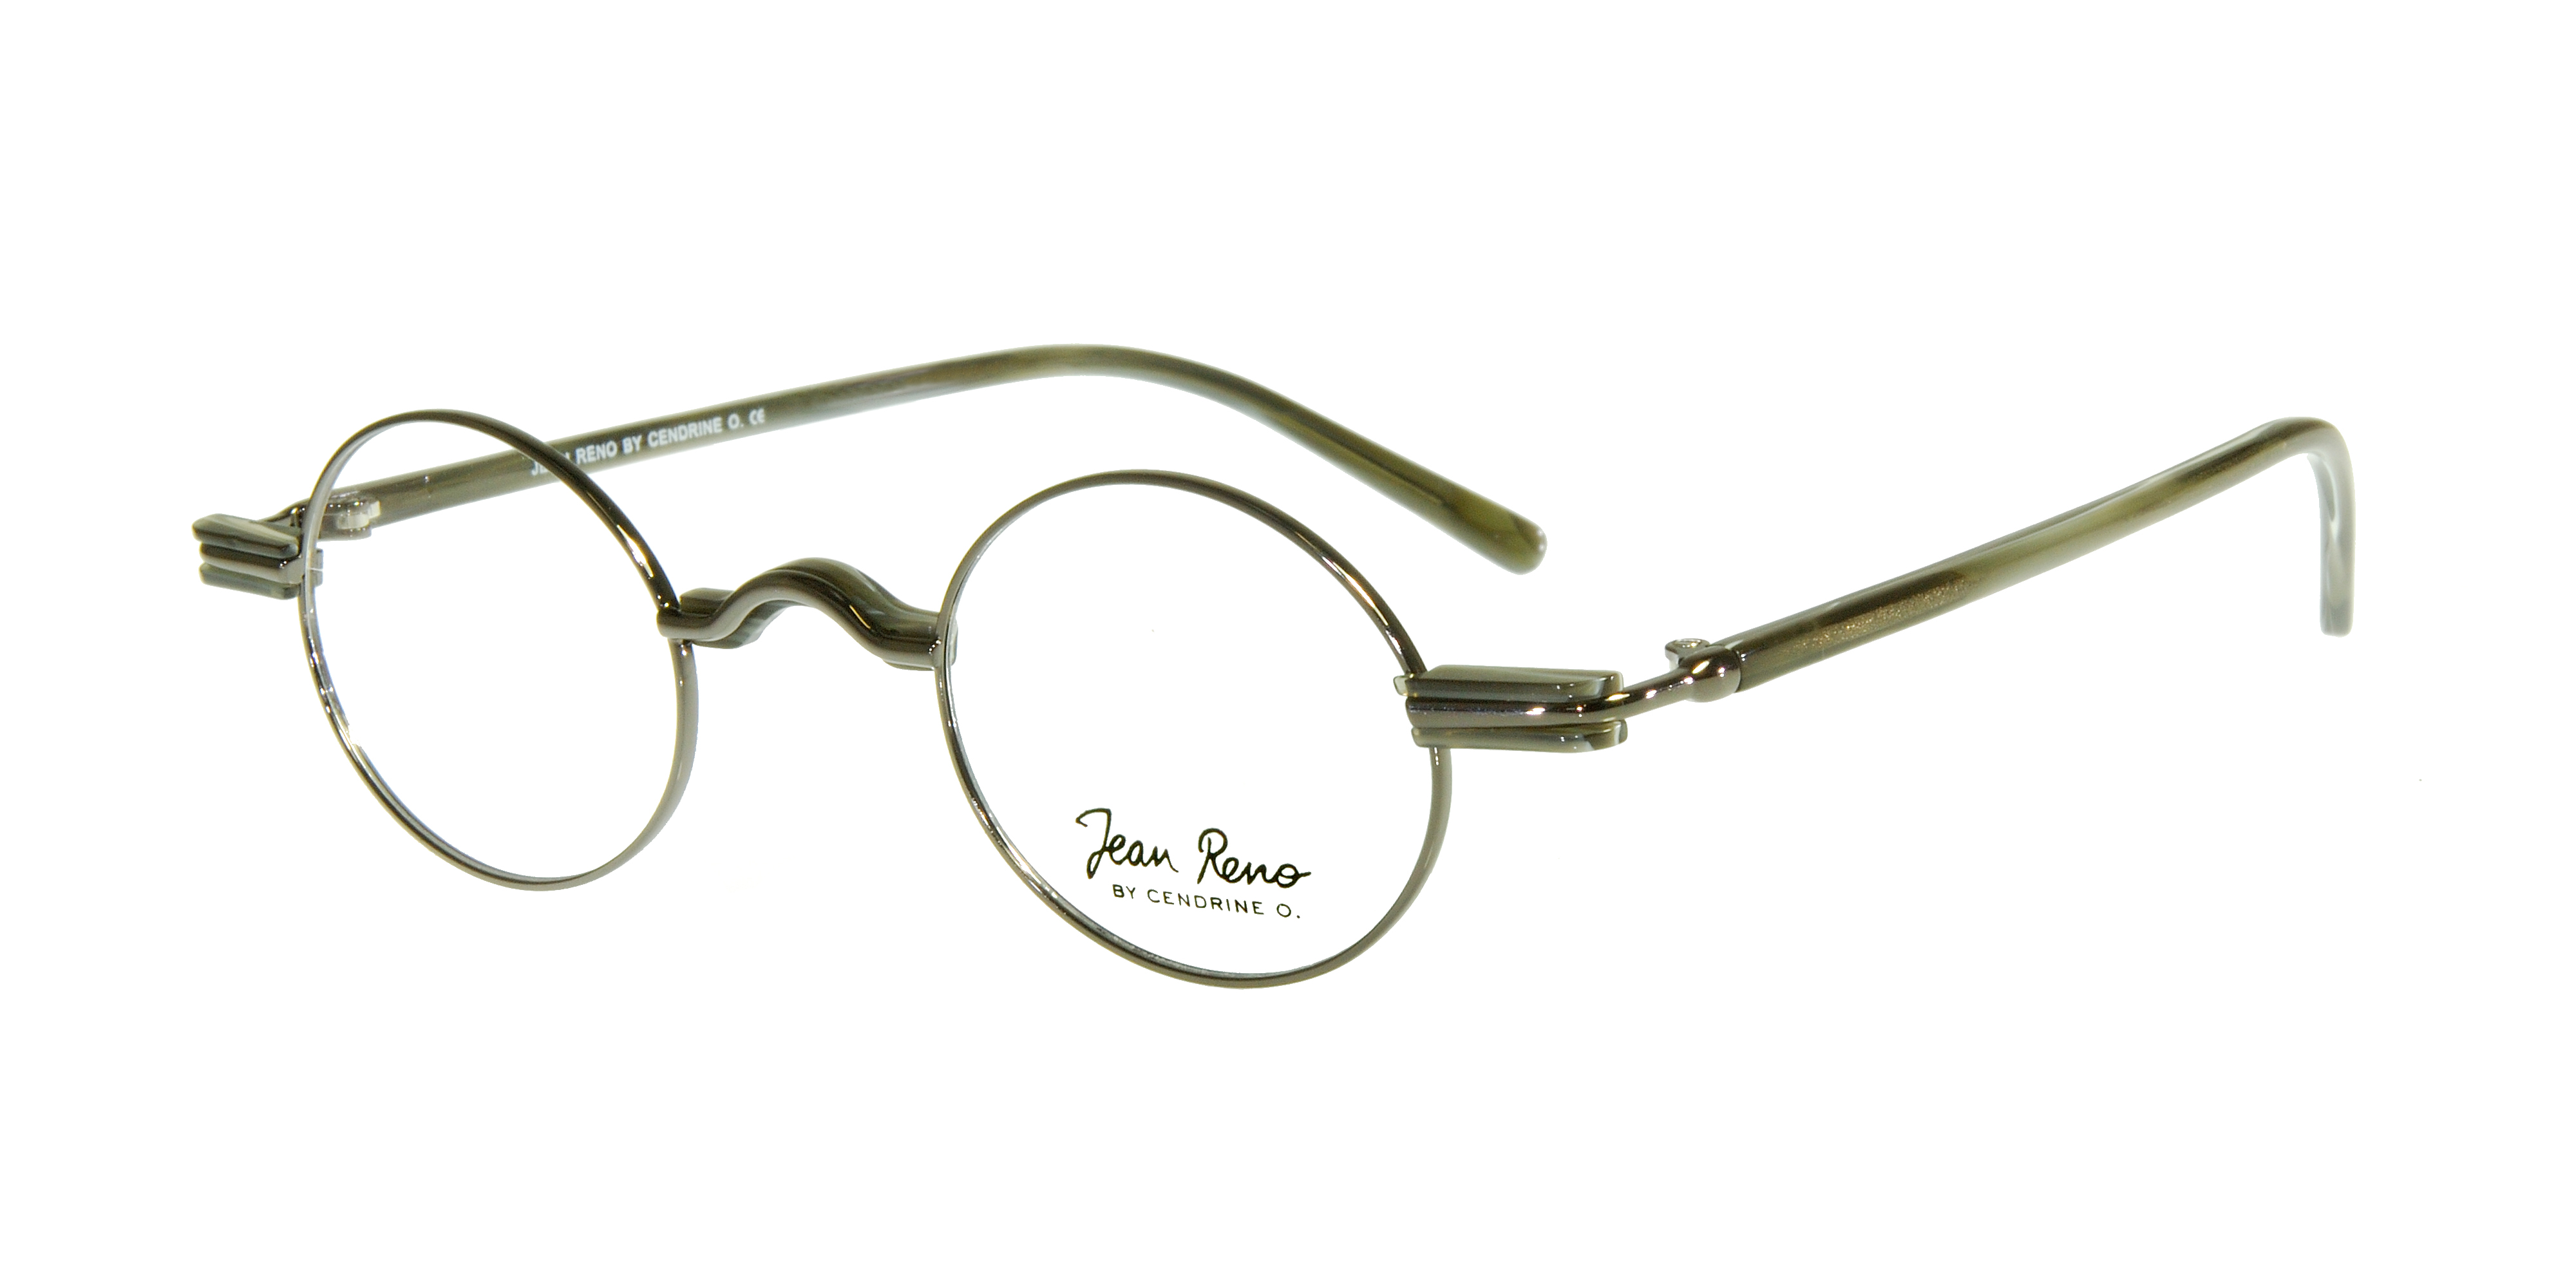 mod the eyewear designed is and frame for pin with medium lens this glasses style jaguar a size black it bridge men diameter